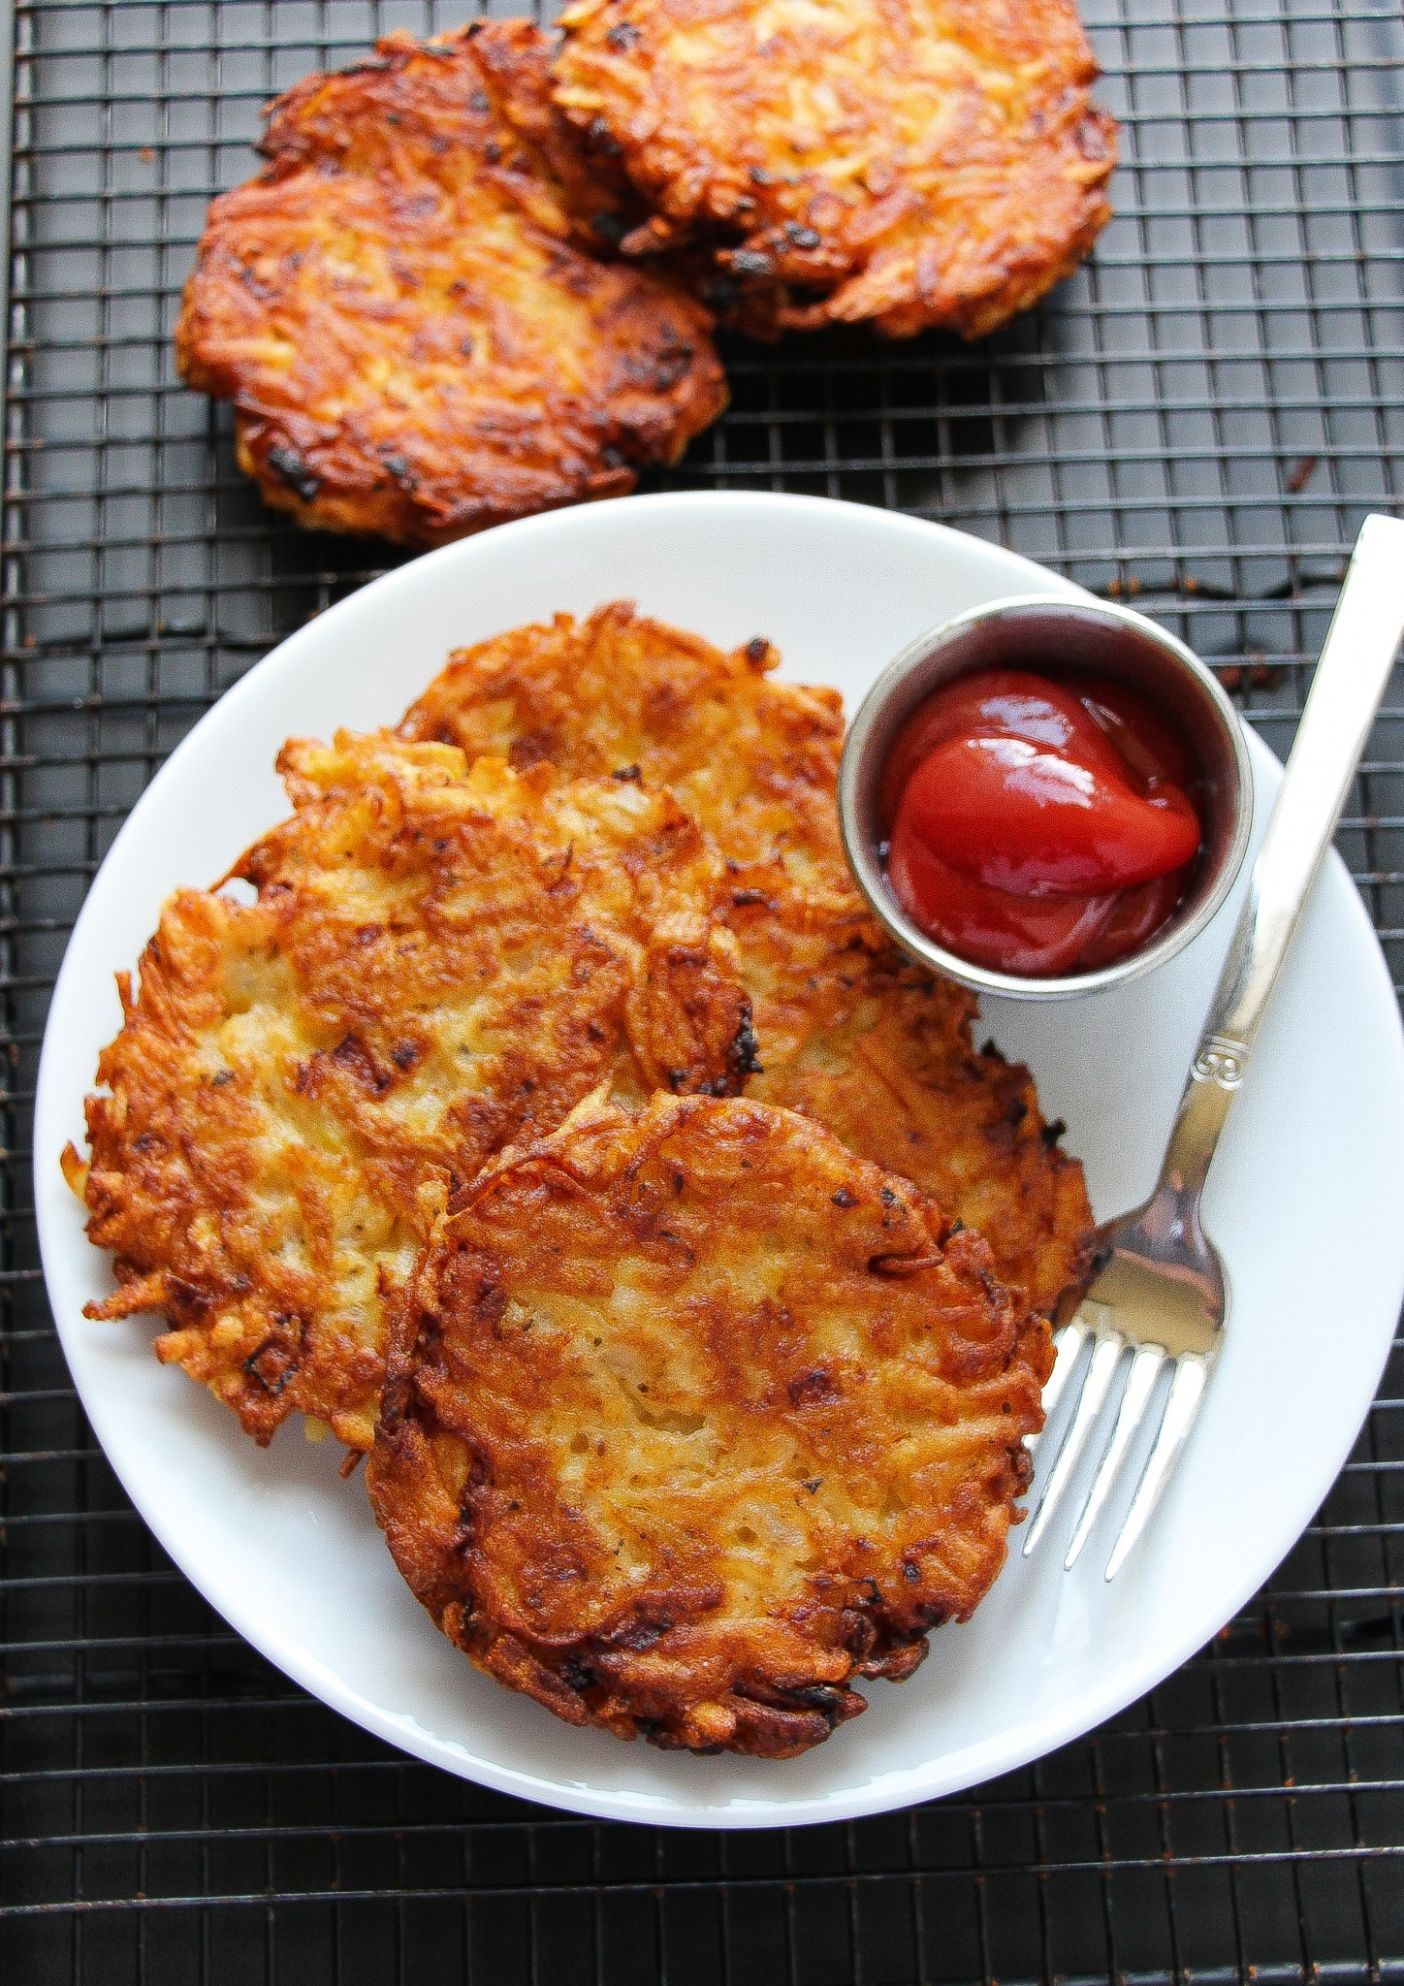 Extra Crispy Restaurant Style Hashbrown Patties - Simple Recipes Hash Browns